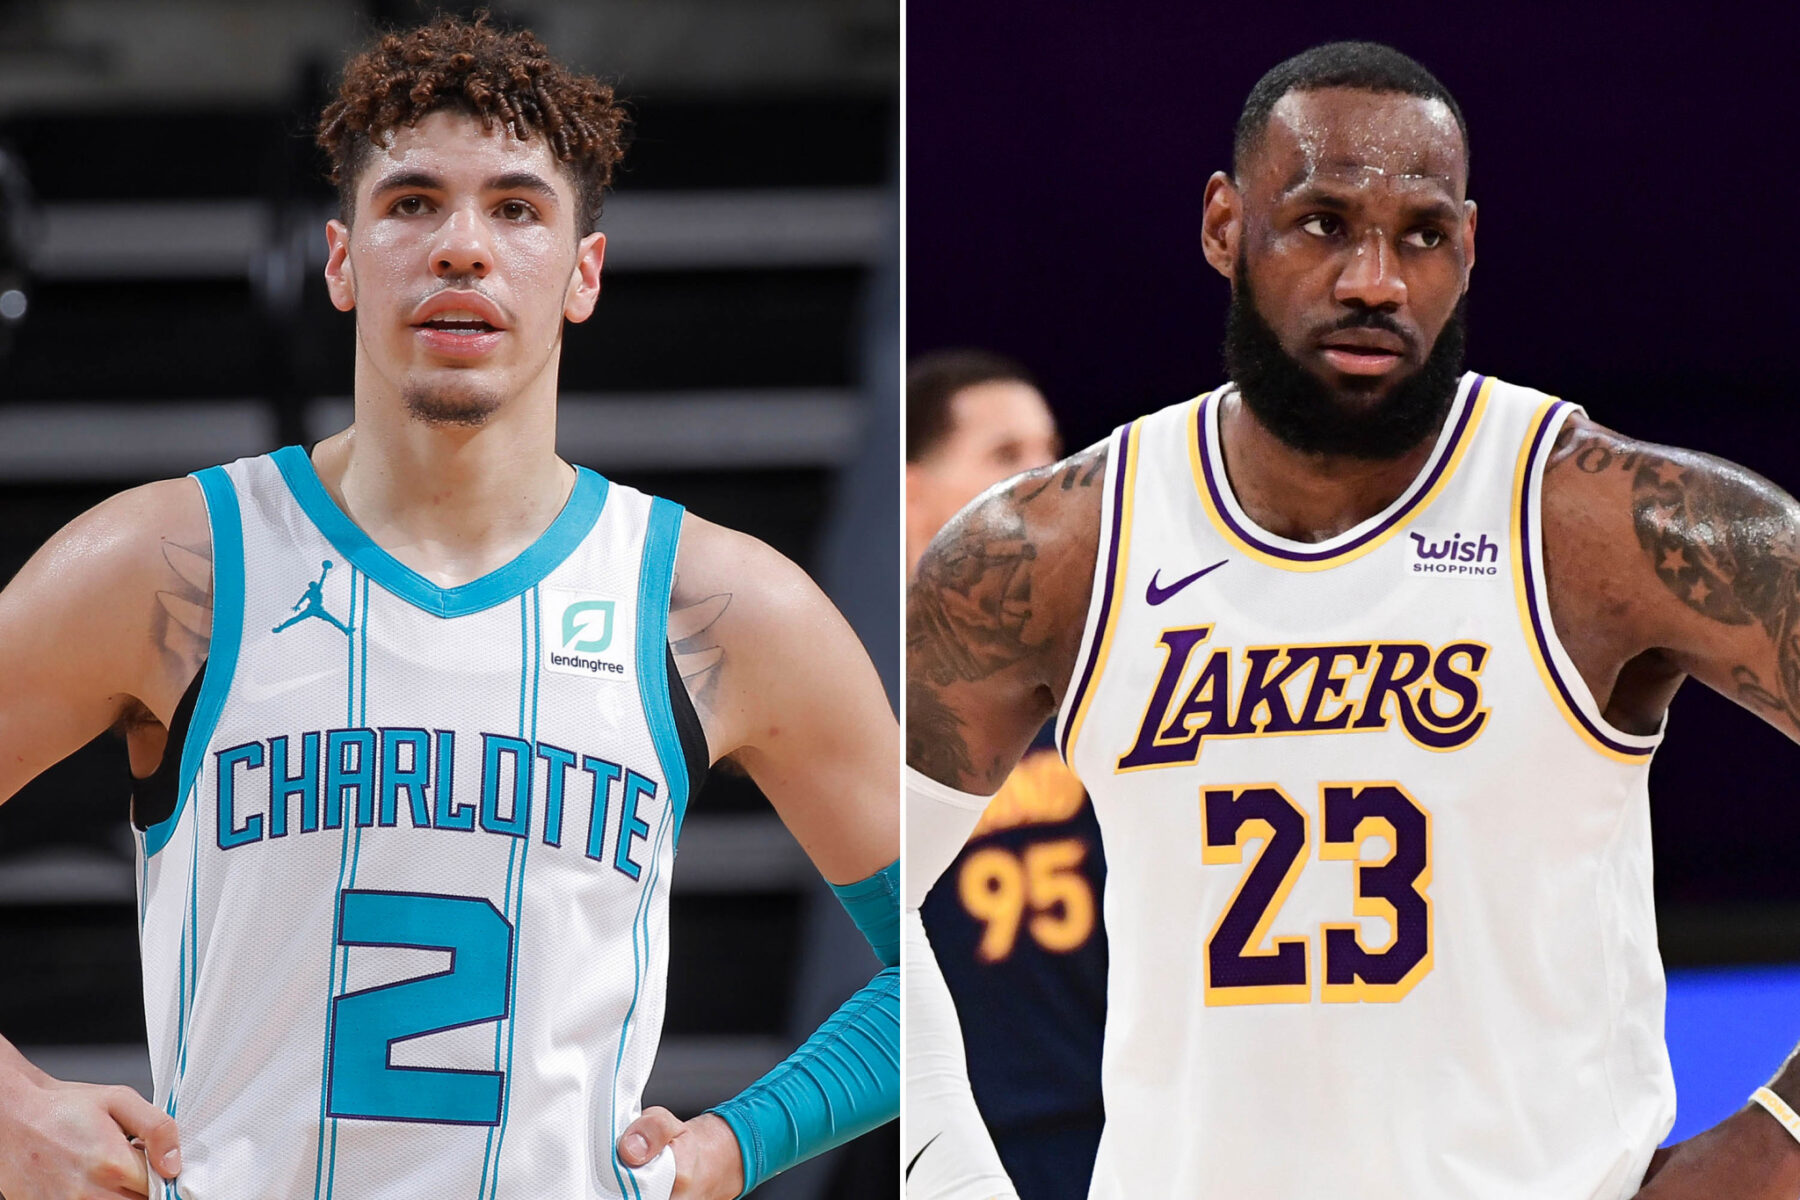 LaMelo Ball and LeBron James